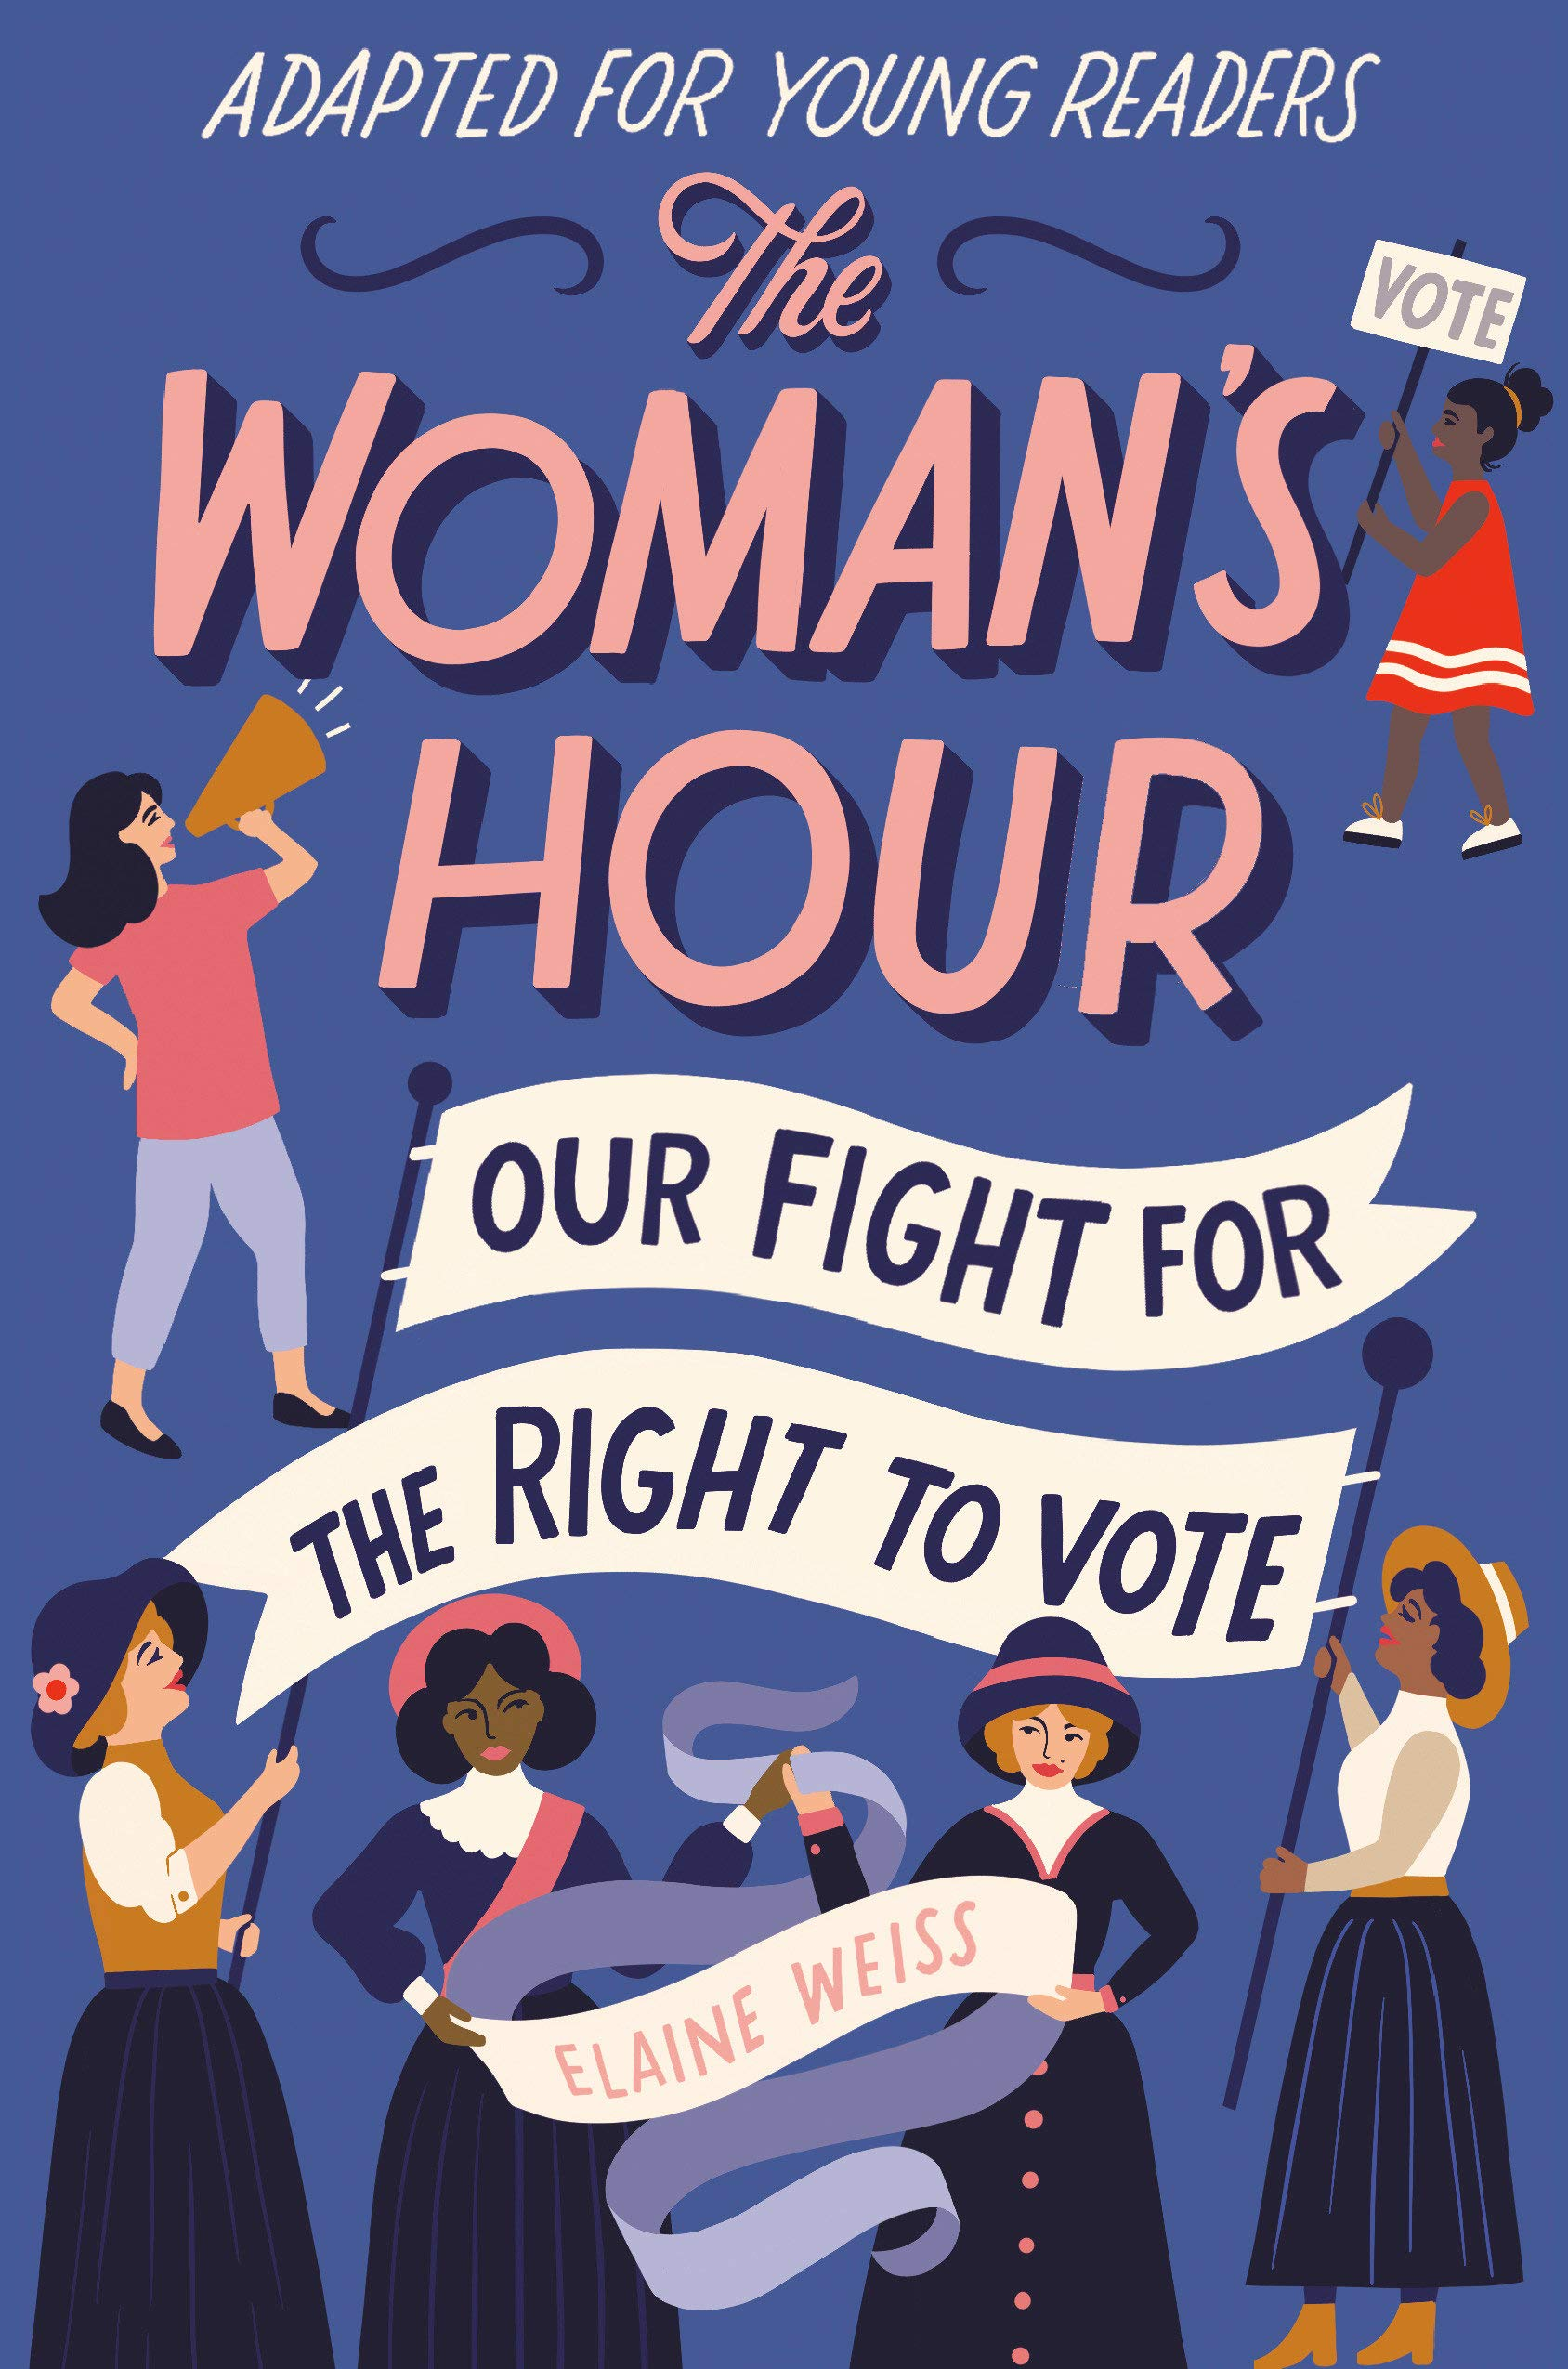 The Woman's Hour: Our Fight for the Right to Vote (Adapted for Young Readers)